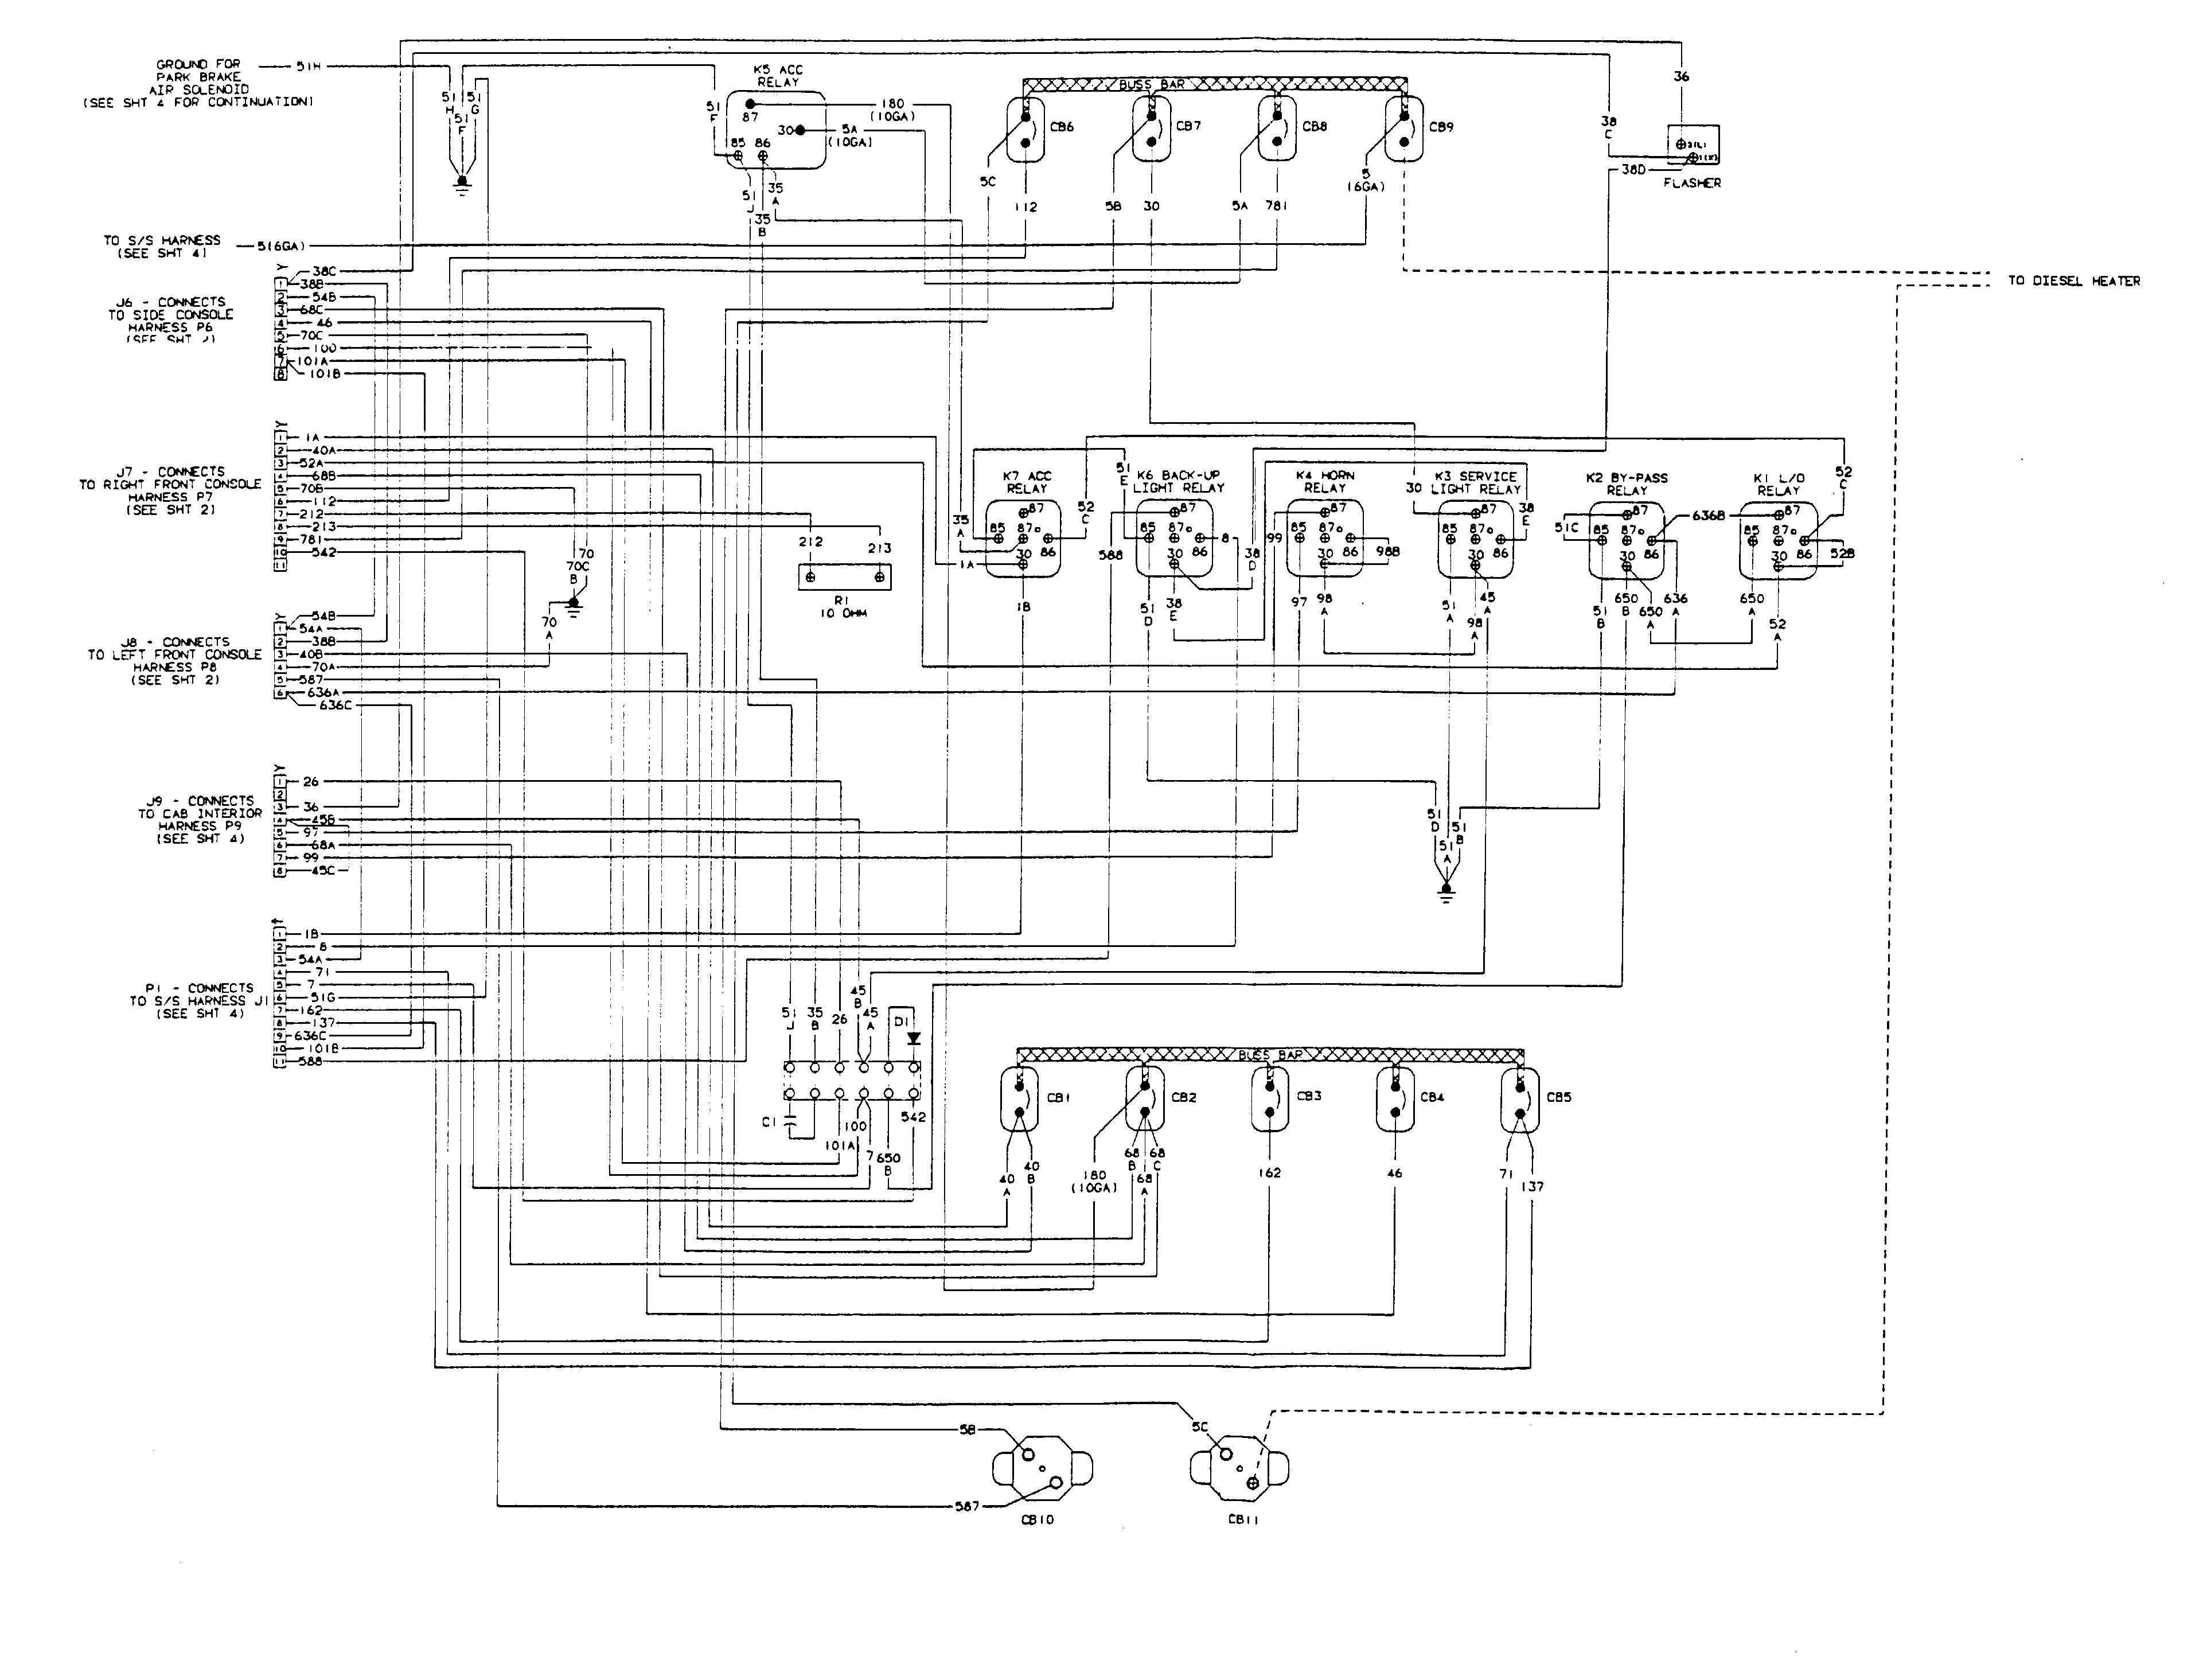 pittsburgh electric hoist wiring diagram Collection-Coffing Hoist Wiring Diagram Awesome Beautiful Overhead Crane Wiring Diagram Contemporary Electrical 8-o